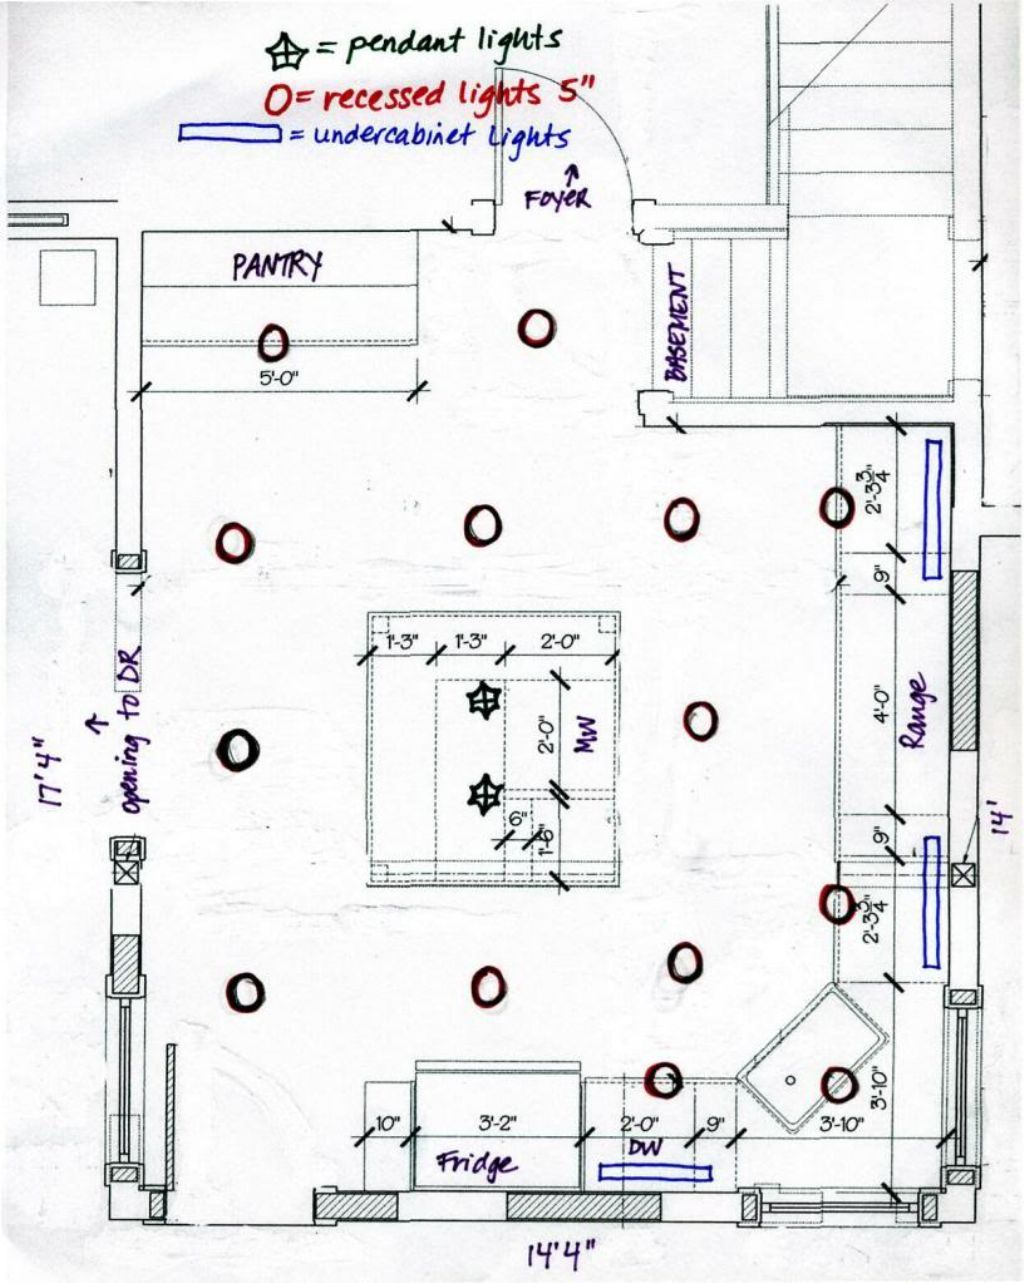 Wiring Diagram For Kitchen Lights